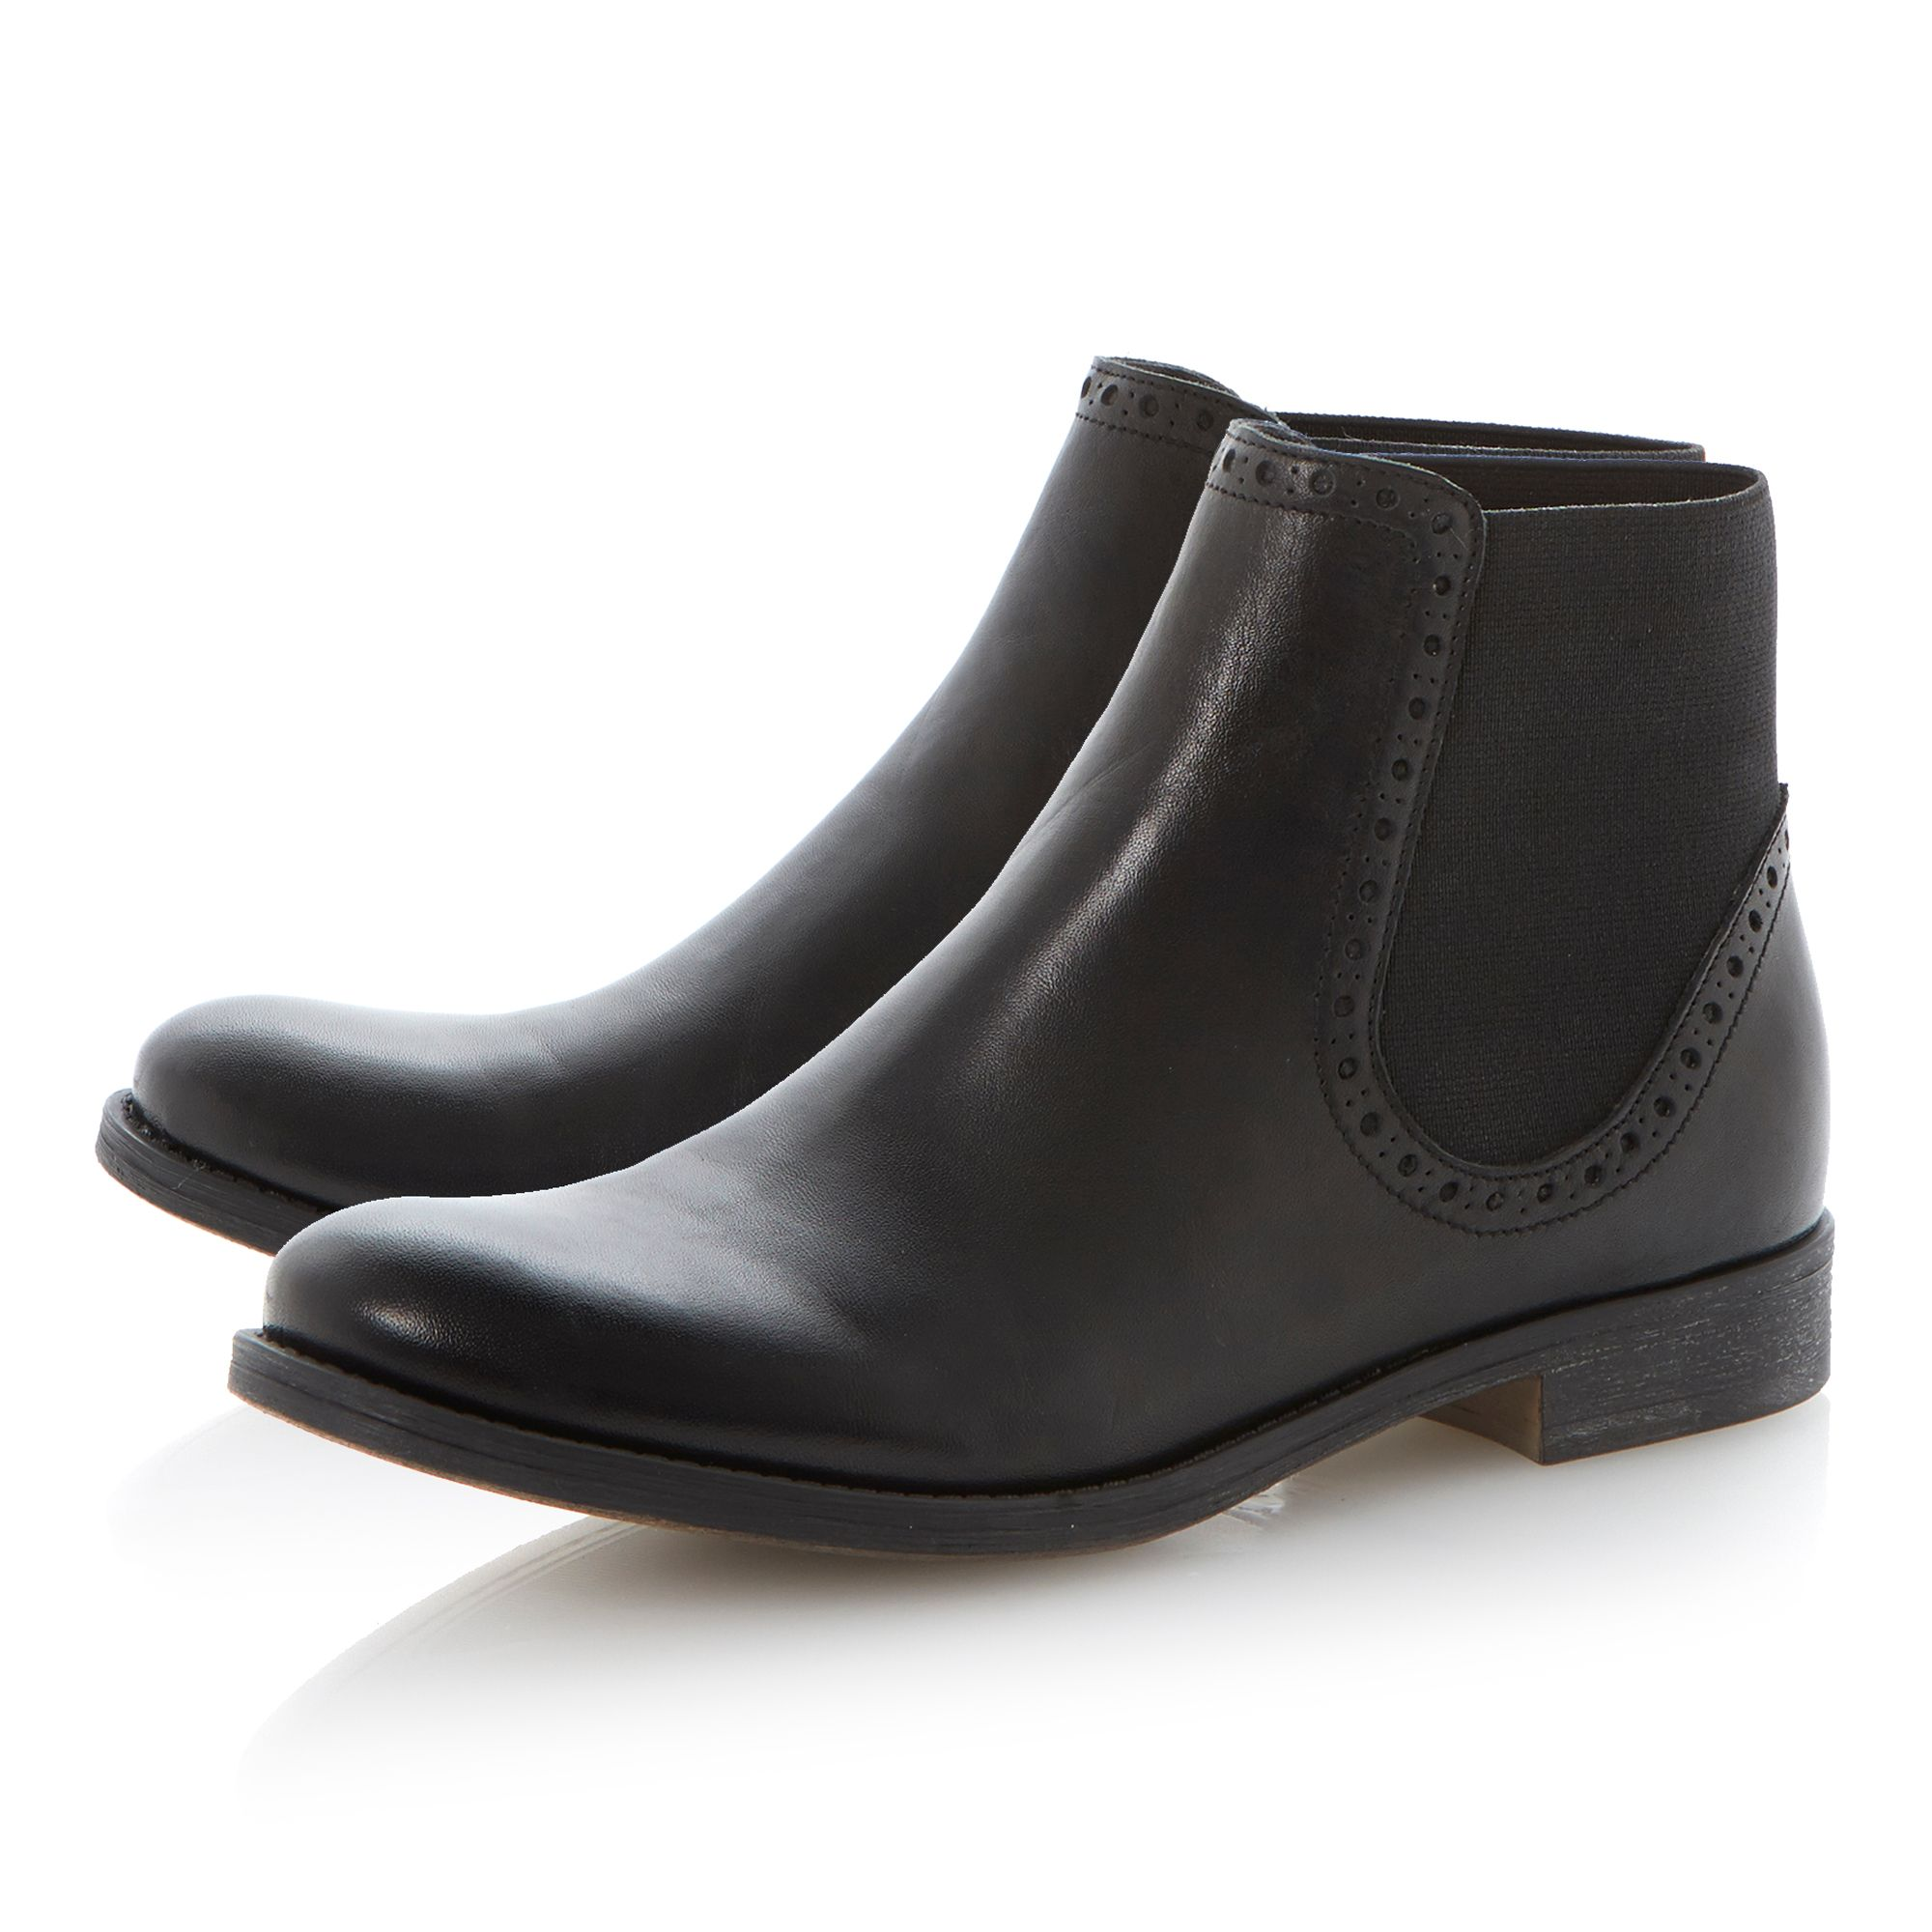 Paddles leather round toe chelsea ankle boots